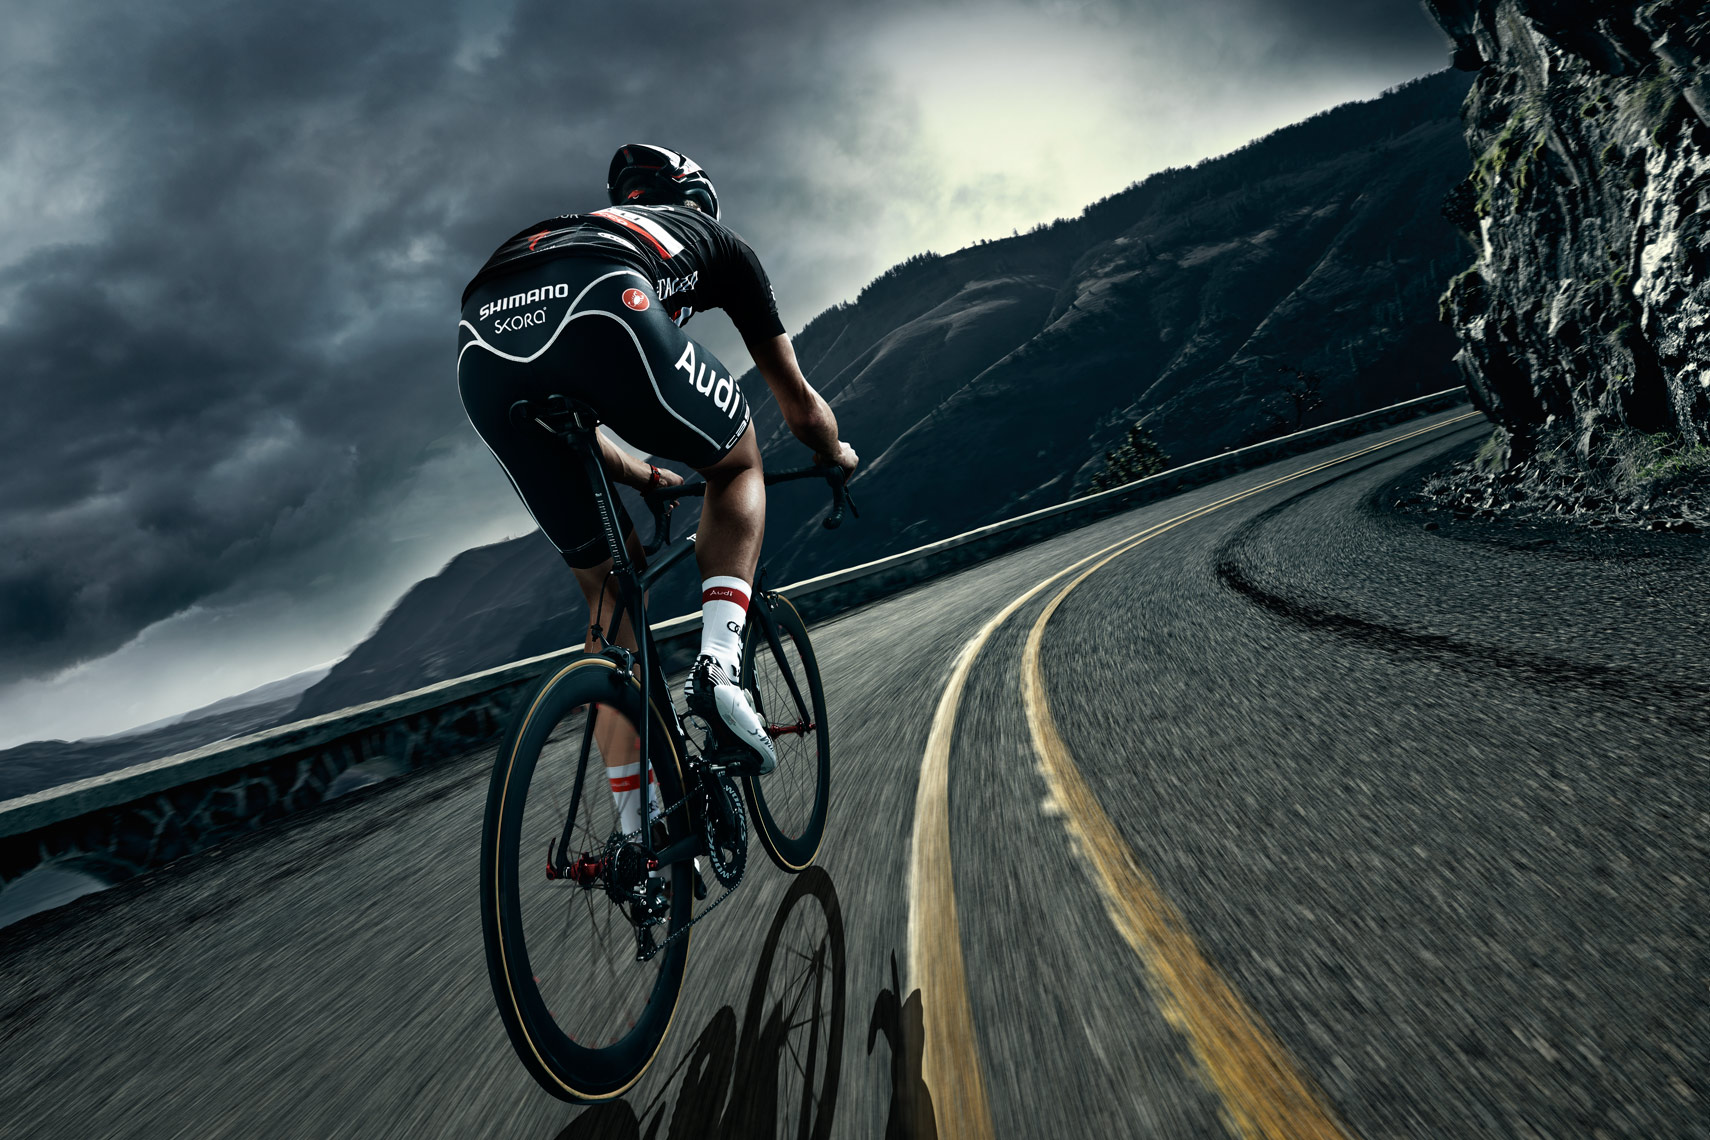 oliver_ludlow_audi_cycling_road_1